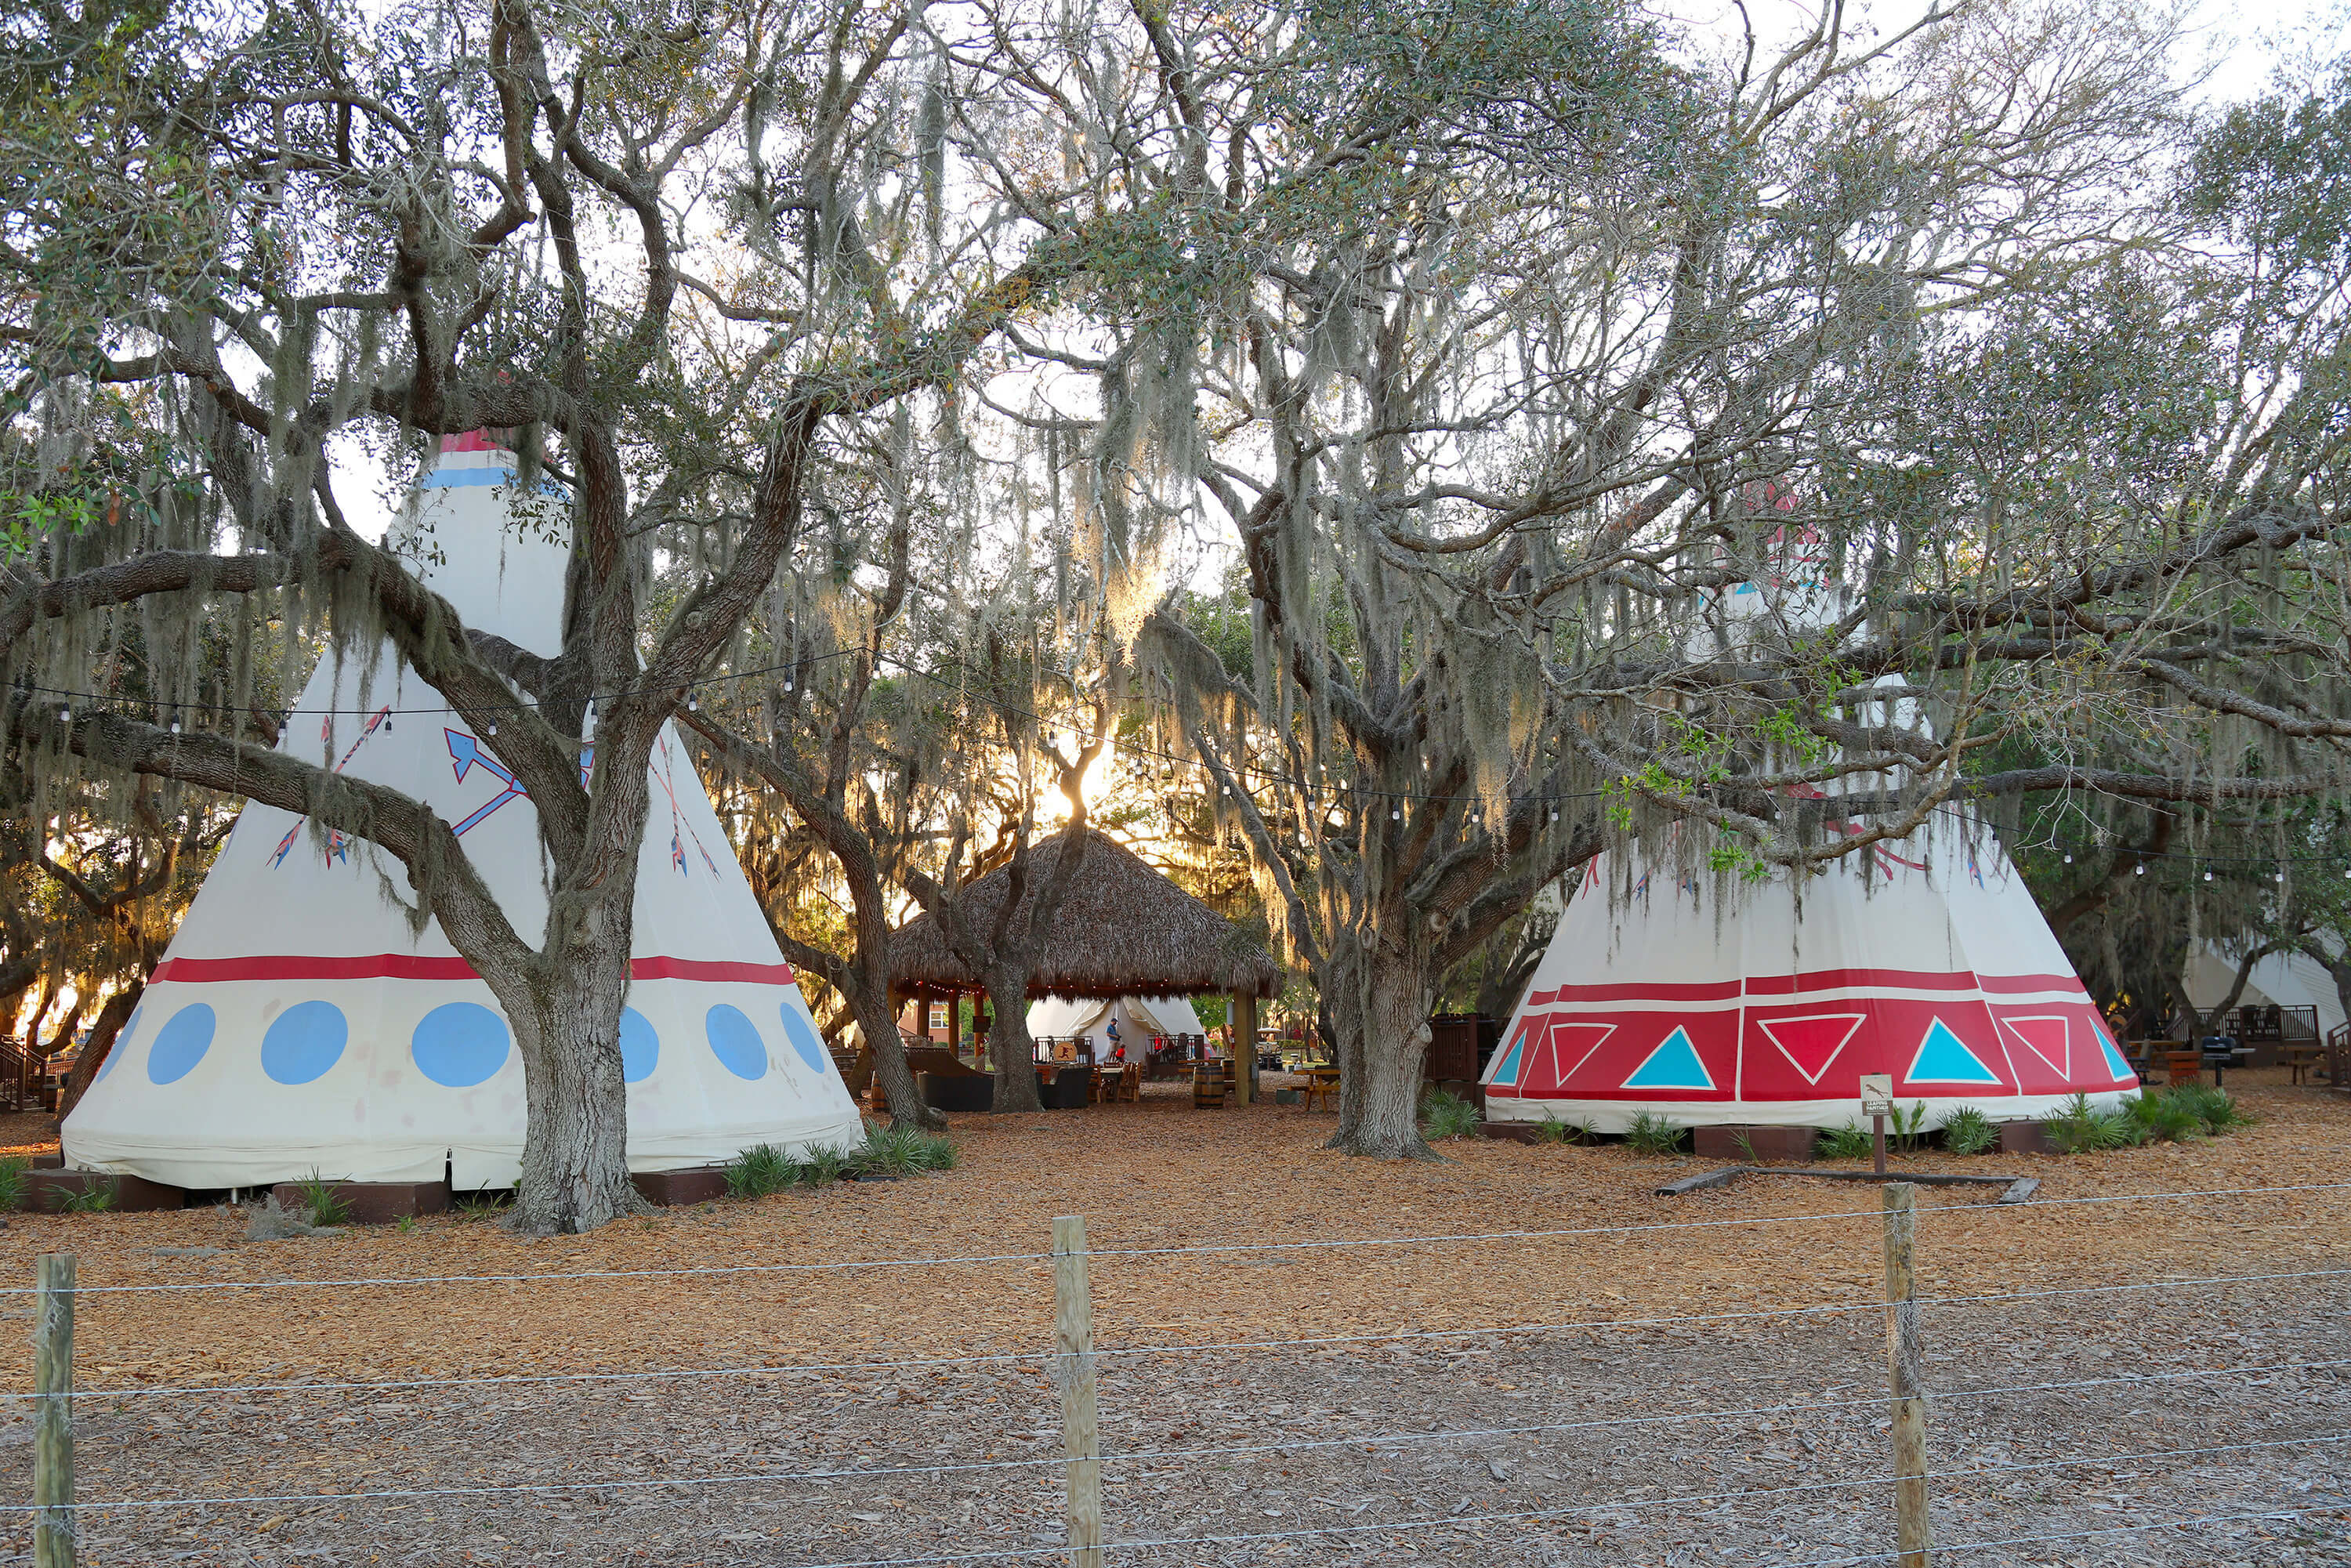 Luxe Teepees with Chickee Hut in background | Westgate River Ranch Resort & Rodeo | Westgate Resorts